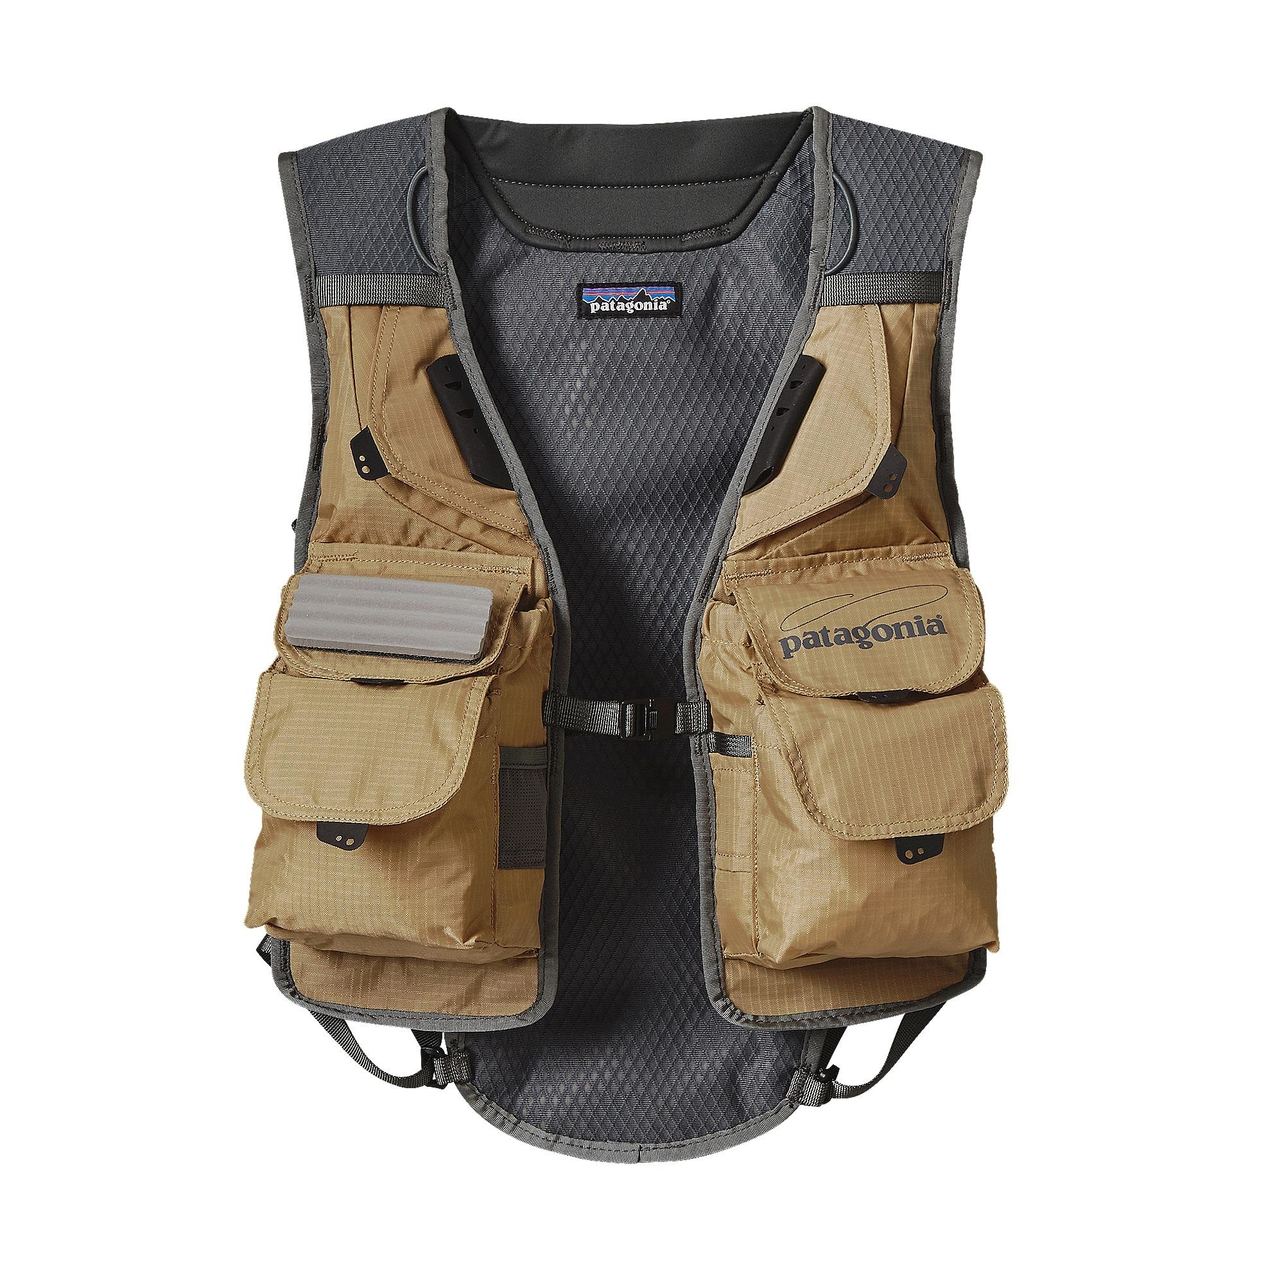 Patagonia Hybrid Pack Fly Fishing Vest